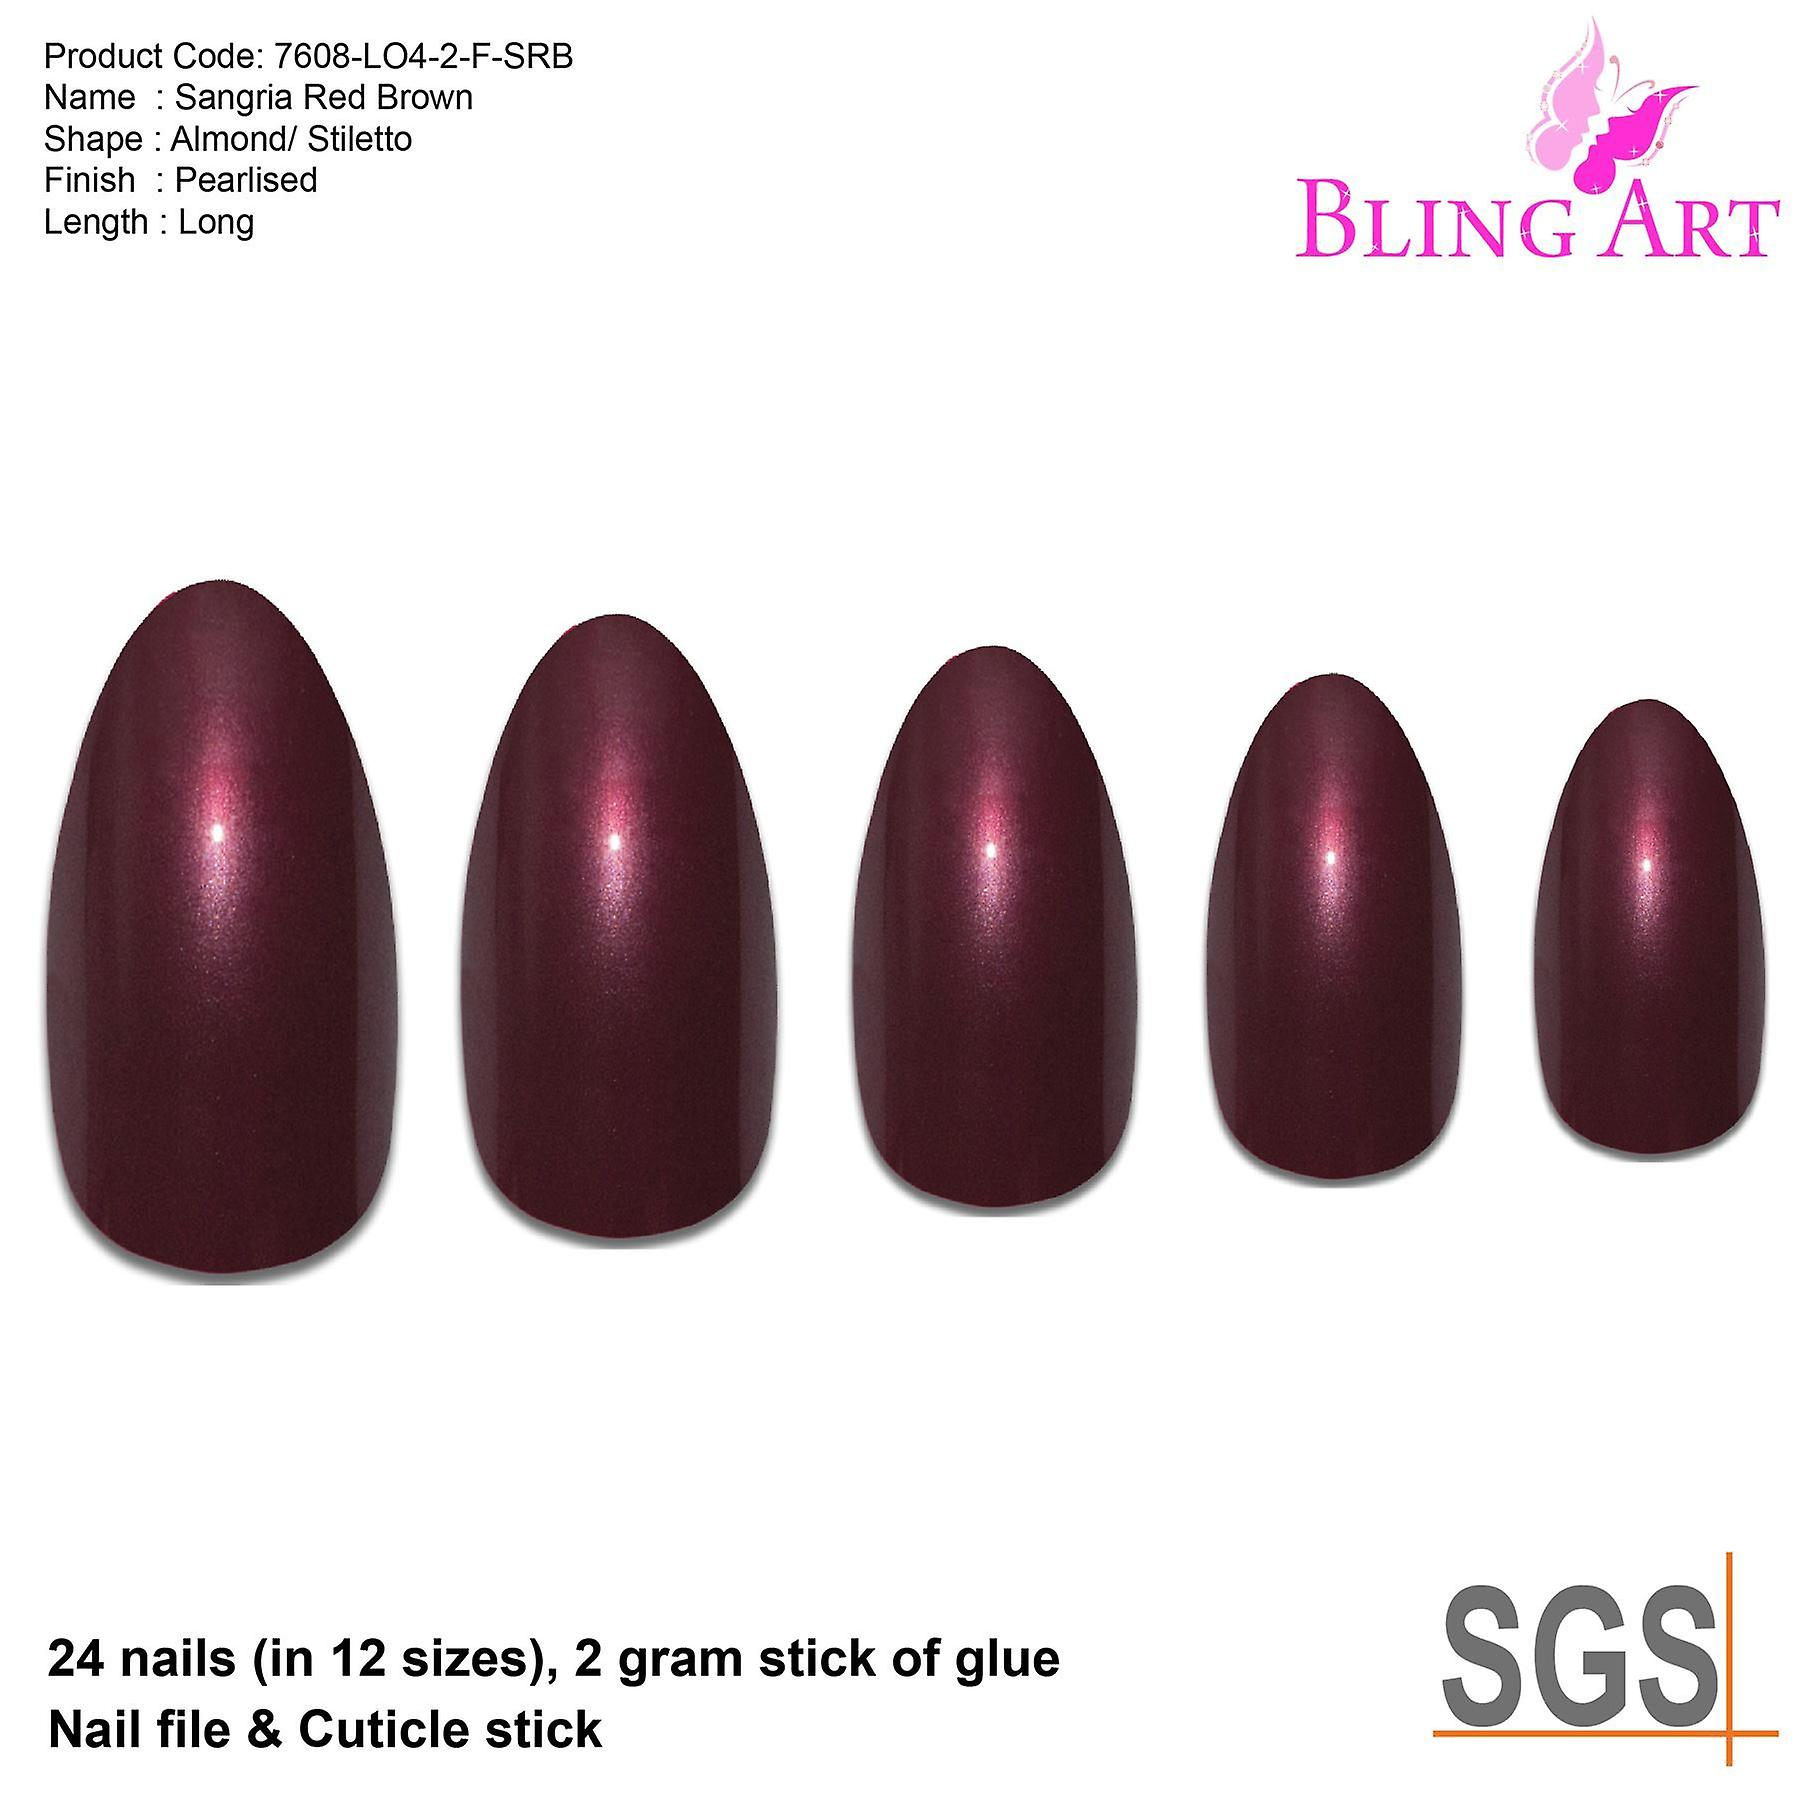 False nails by bling art red brown almond stiletto coffin 24 fake long tips